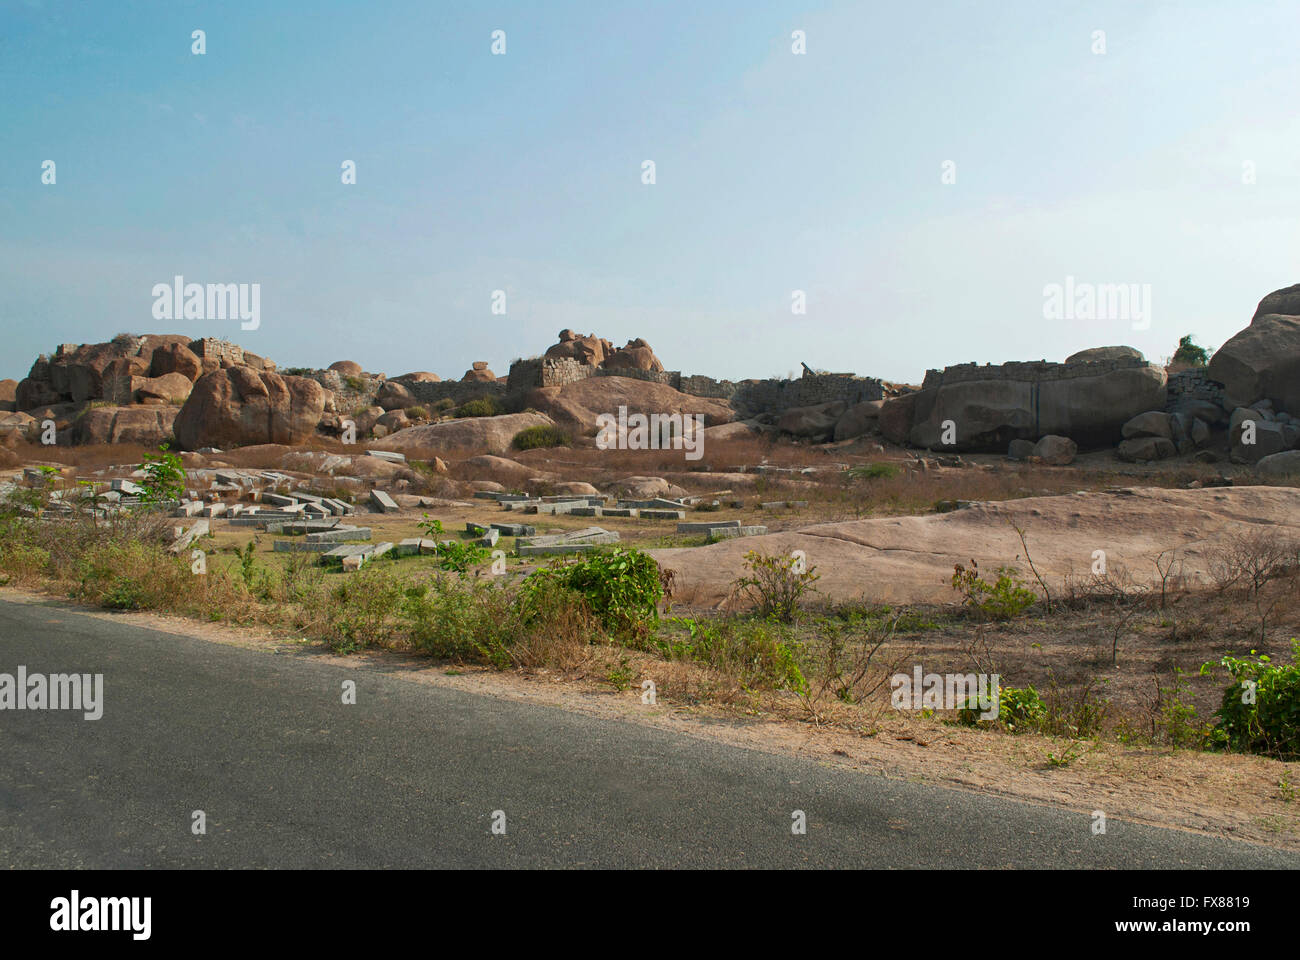 General view of Hampi ruins, Hampi, Karnataka, India. Sacred Center. - Stock Image